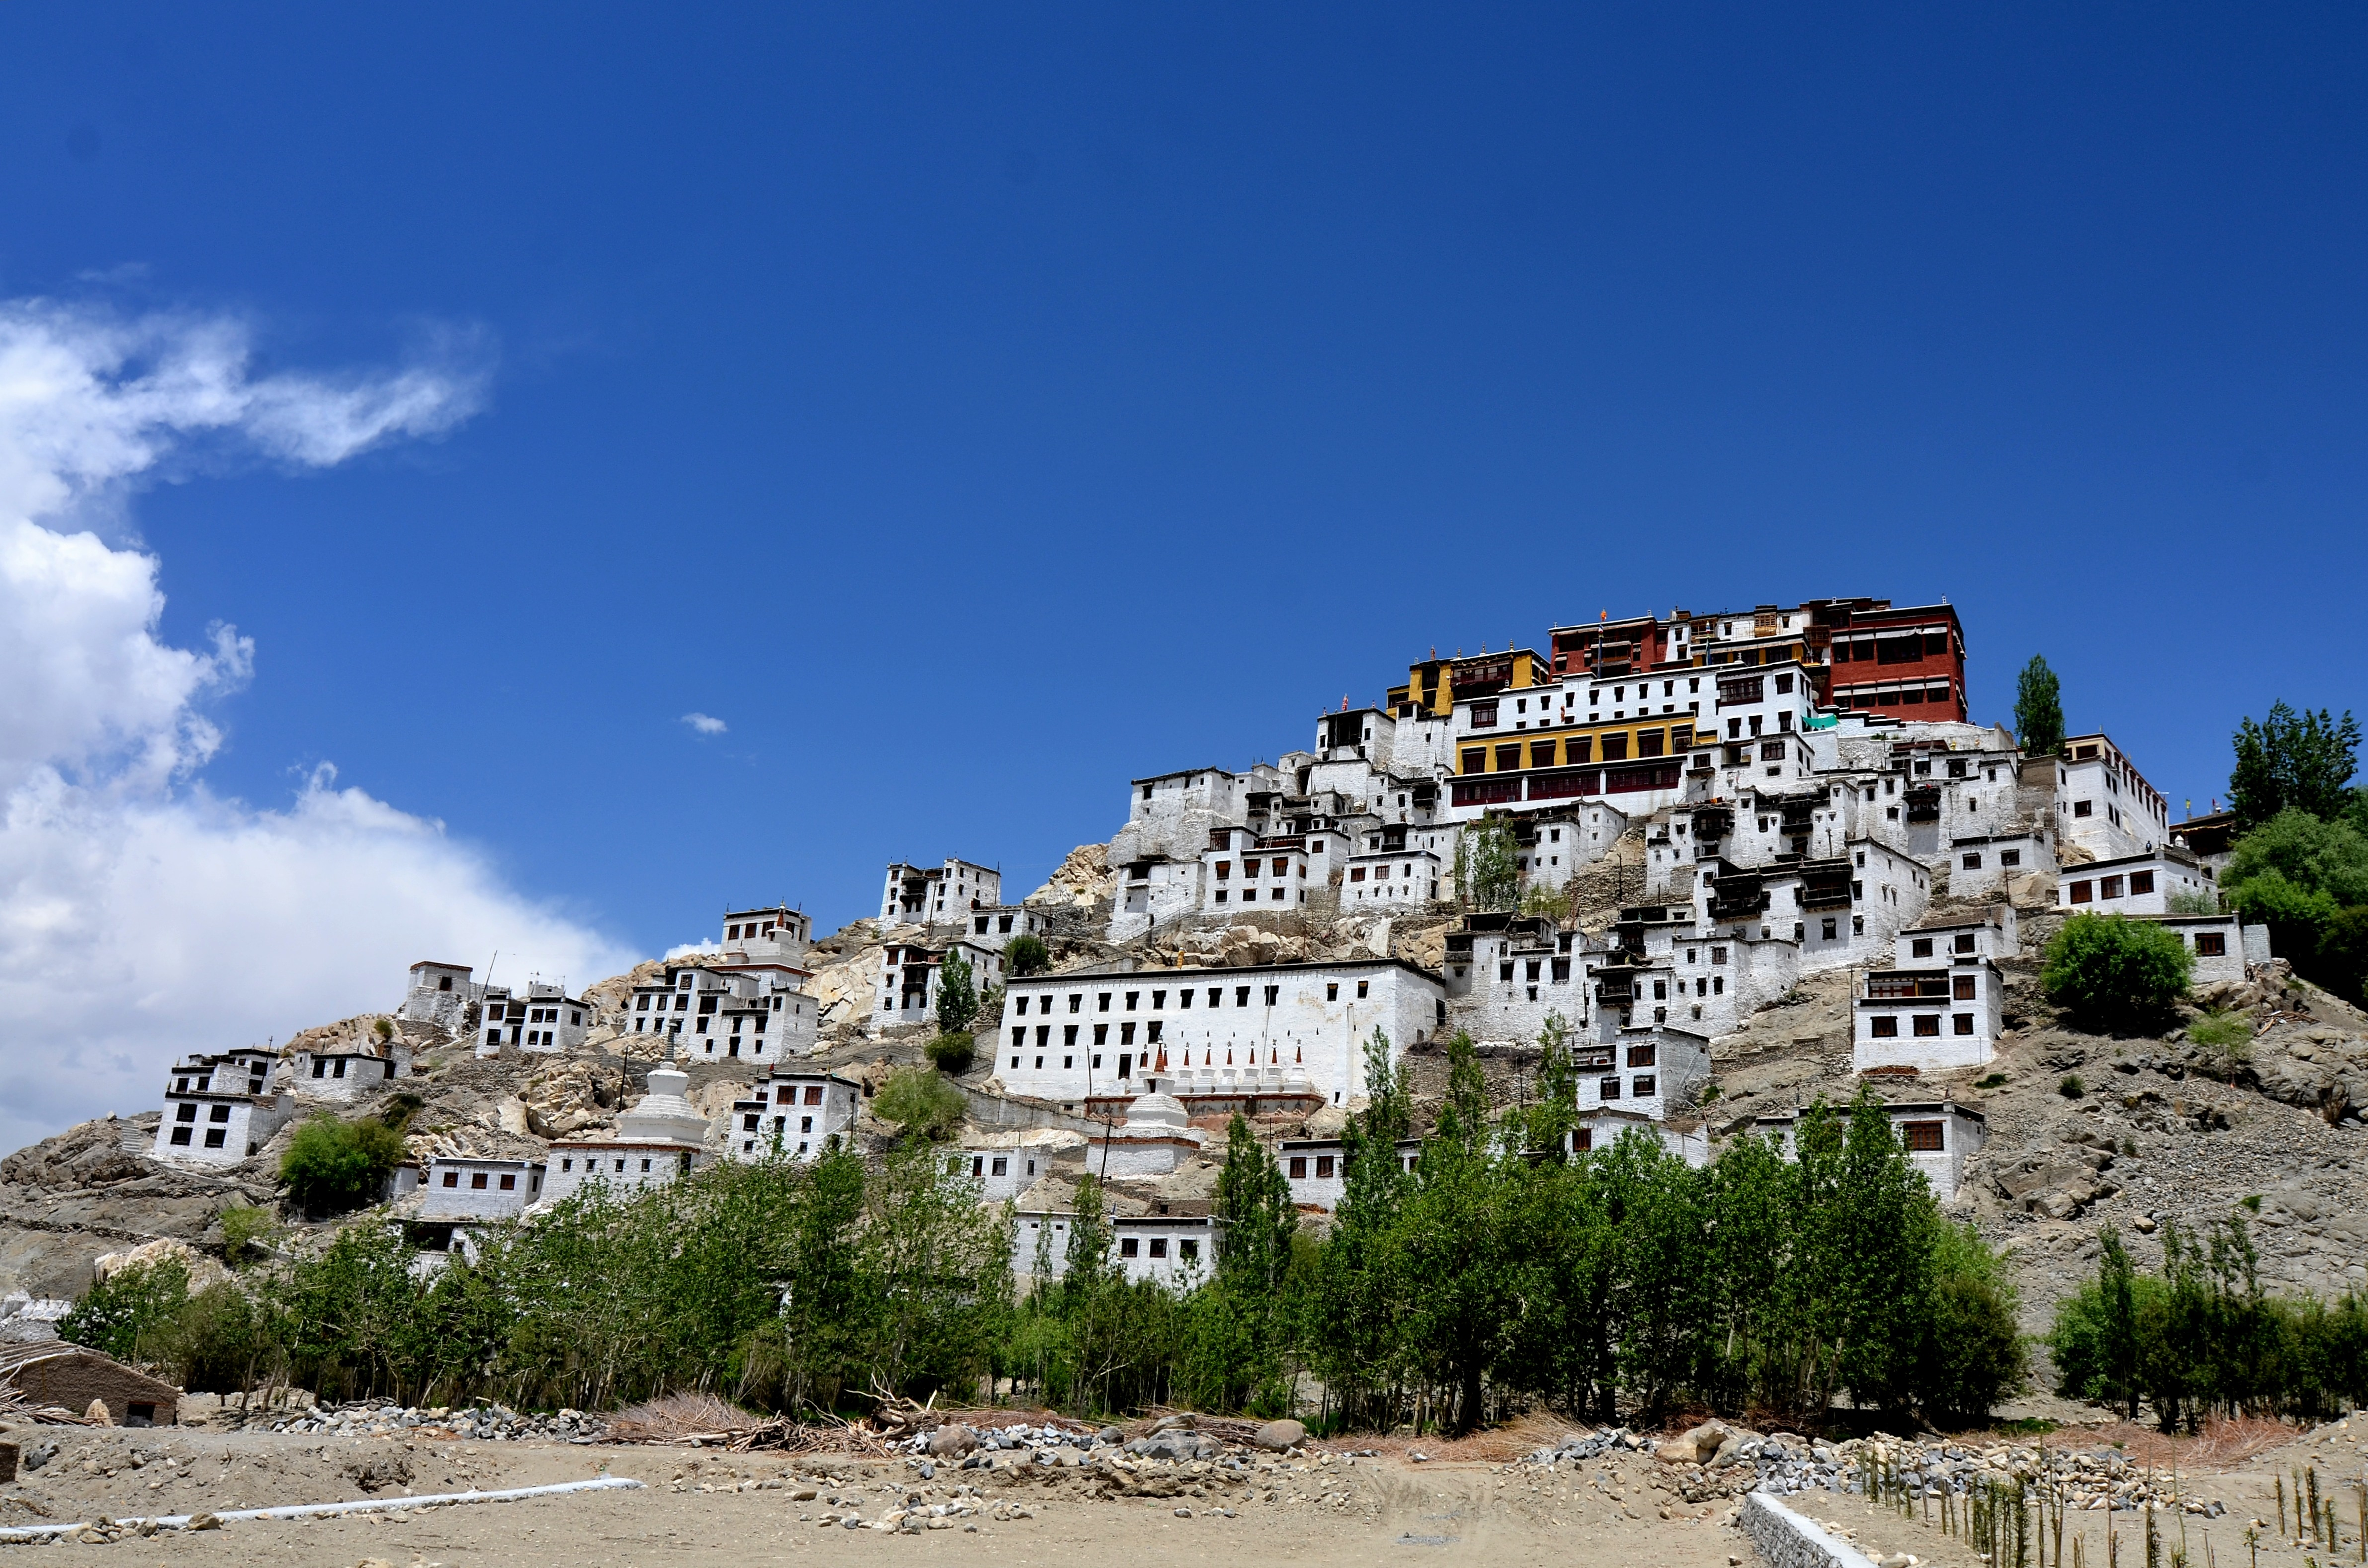 Leh India  City pictures : Thikse Monastery,Leh ,J&K ,India Wikimedia Commons